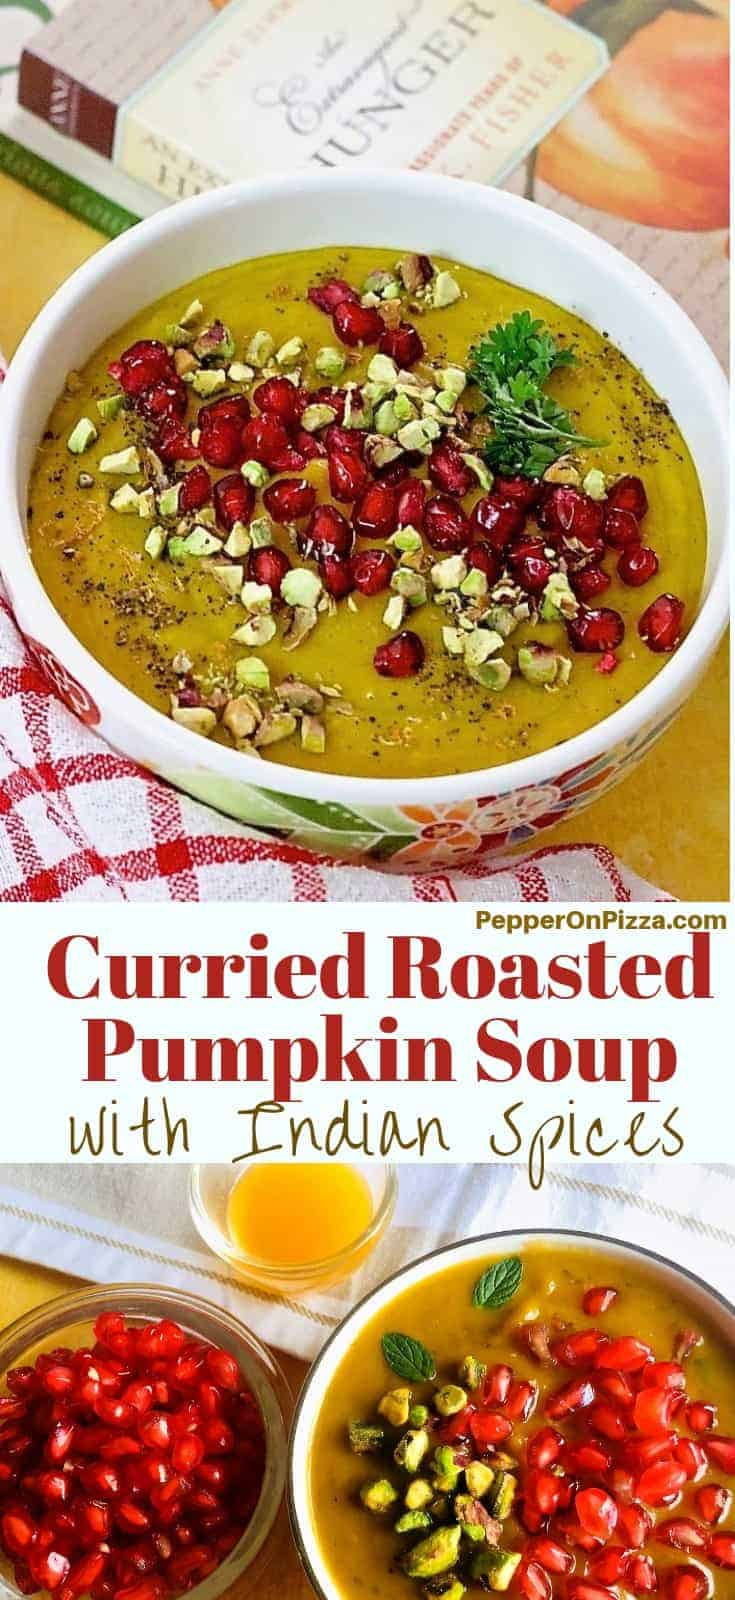 Delicious, nutritious and easy to make Curried Roasted Pumpkin Soup. Chockfull of flavour and texture, with apple, Indian spices (including turmeric, coriander, fennel and chilli powder) and a garnish of pomegranate and toasted pista nuts as well as a dash of orange juice, to warm you up on a chill evening